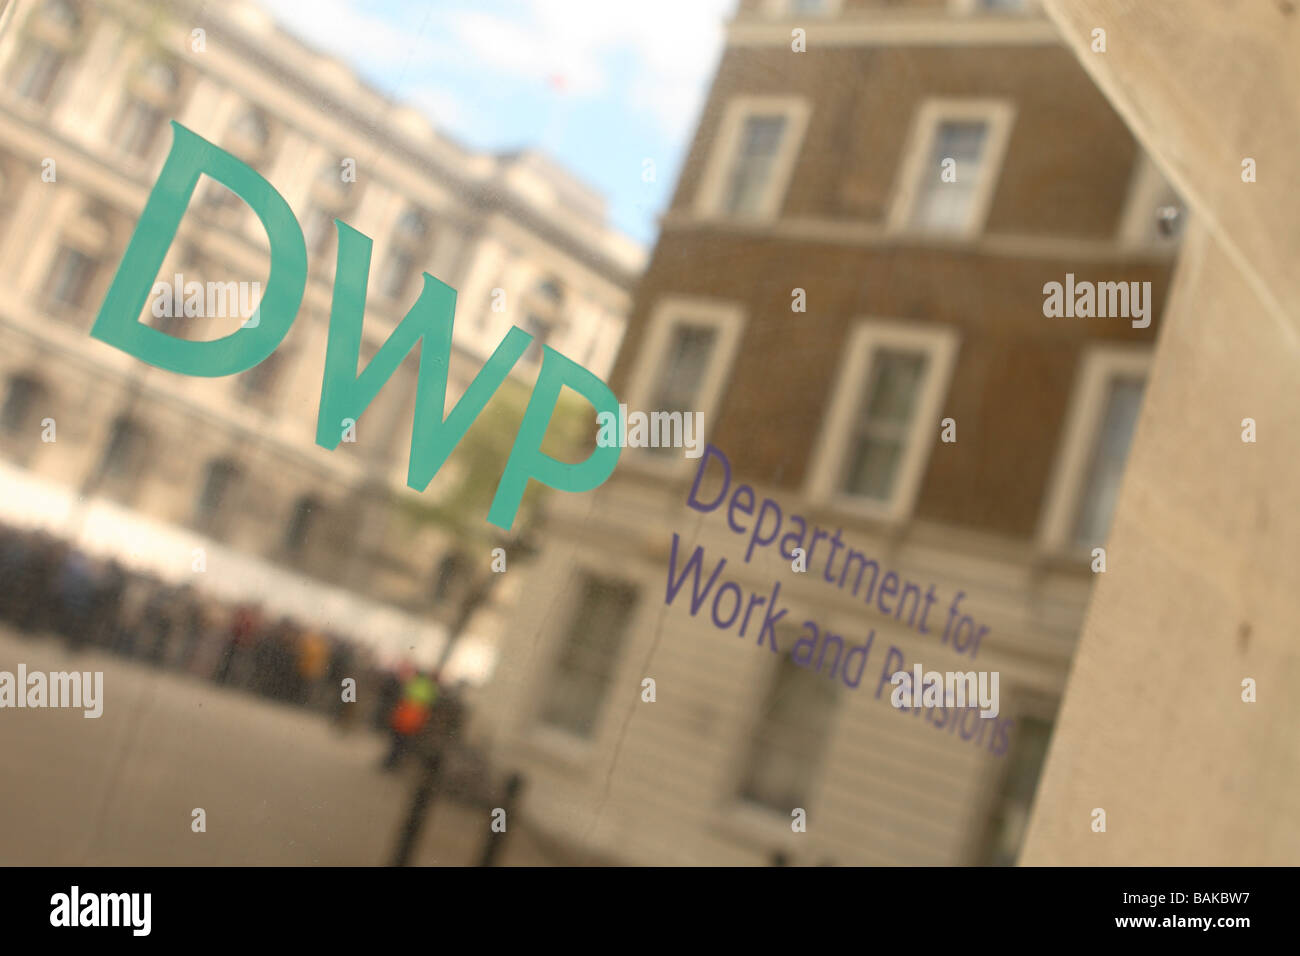 DWP Department for Work and Pensions government entrance sign building in Whitehall London Stock Photo